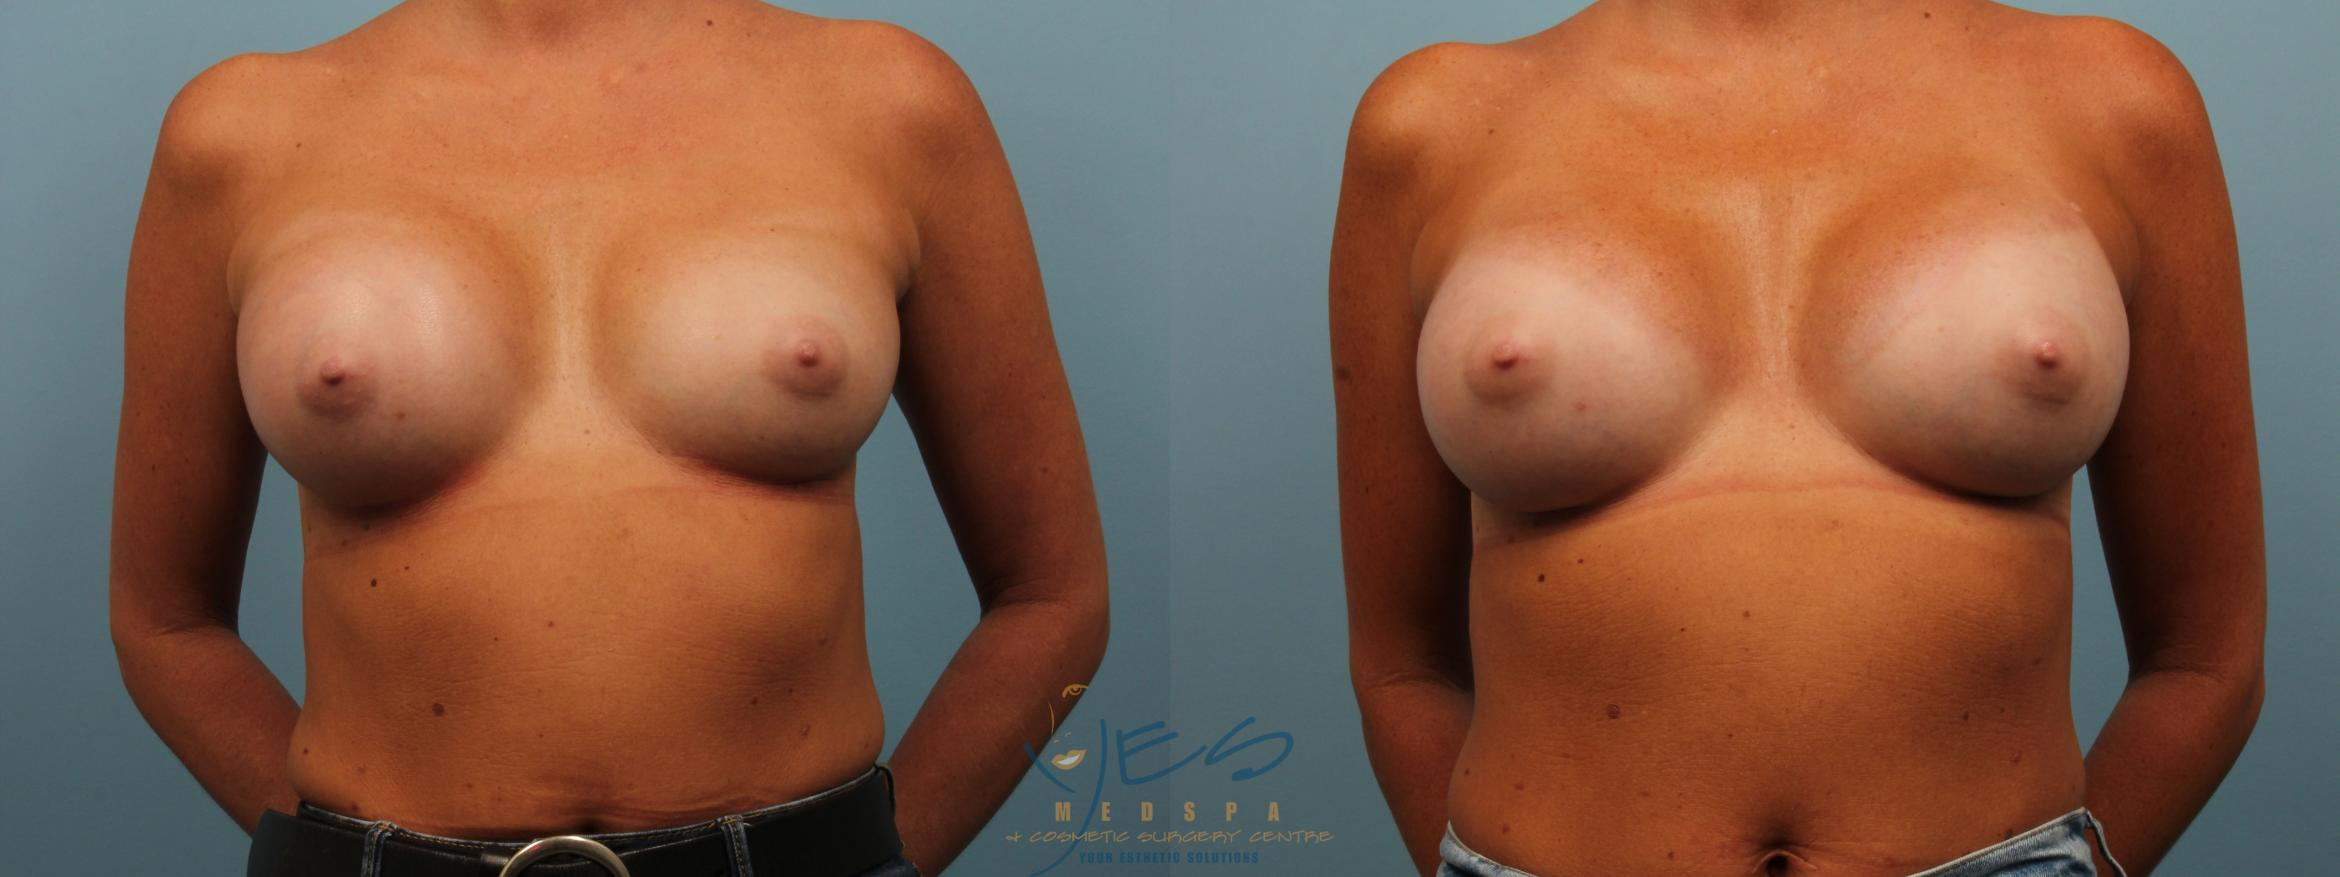 Revision Breast Surgery Case 286 Before & After Front | Vancouver, BC | YES Medspa & Cosmetic Surgery Centre